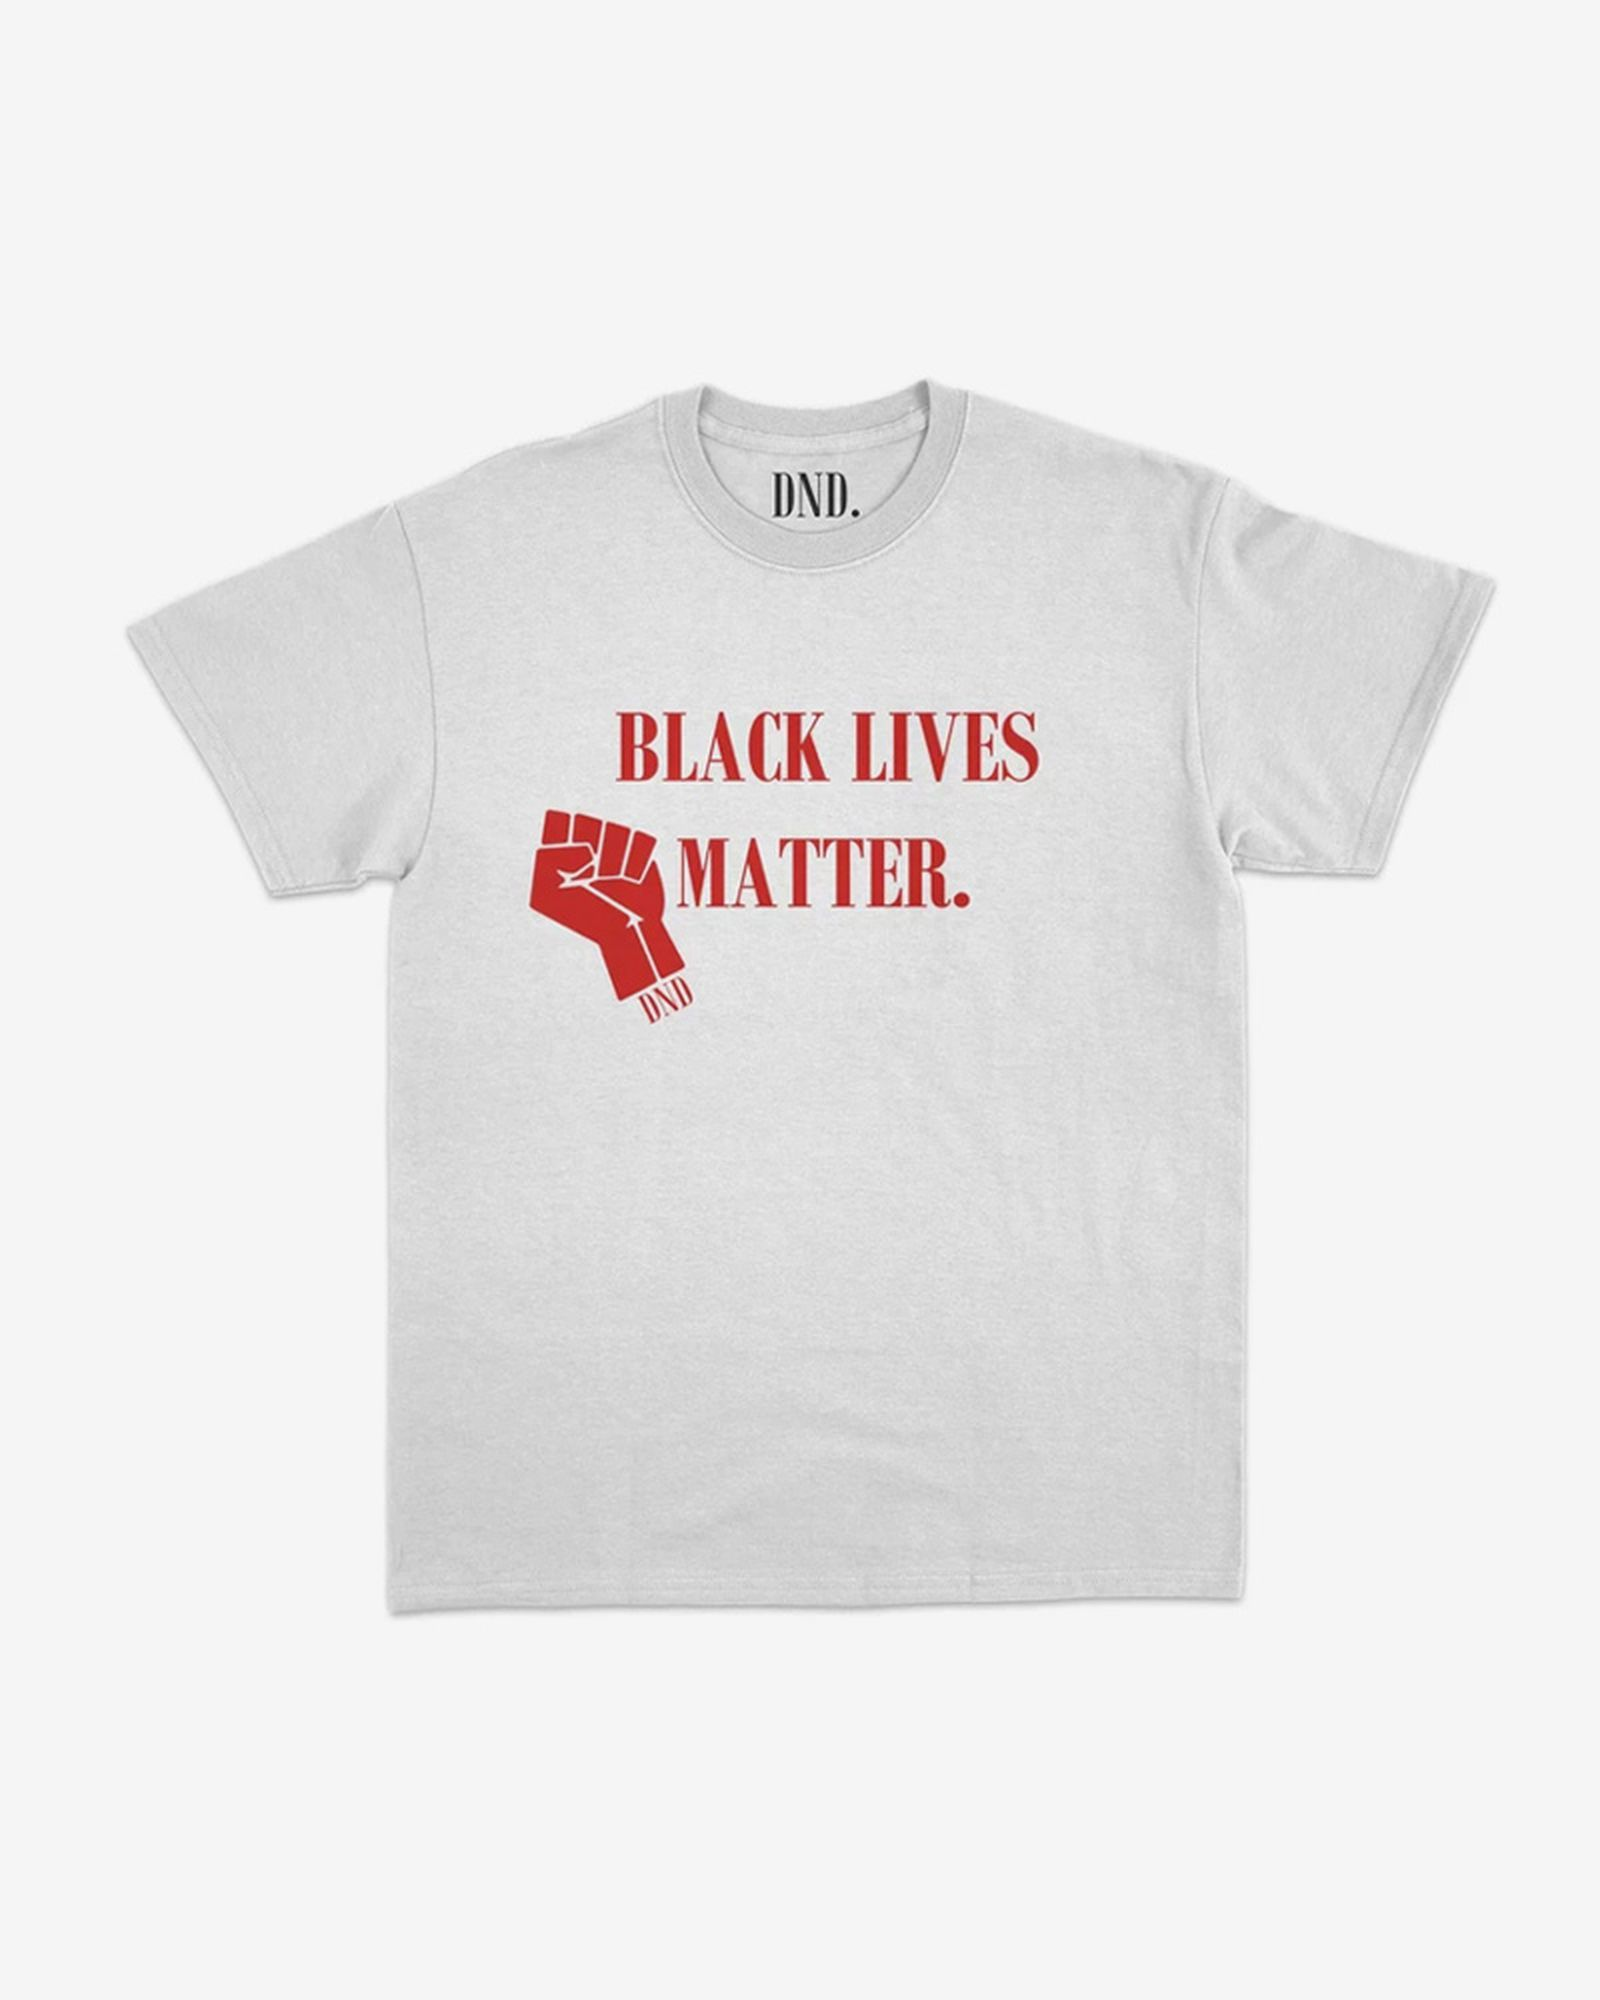 support-black-lives-matter-causes-with-these-charity-t-shirts-and-more-2-25